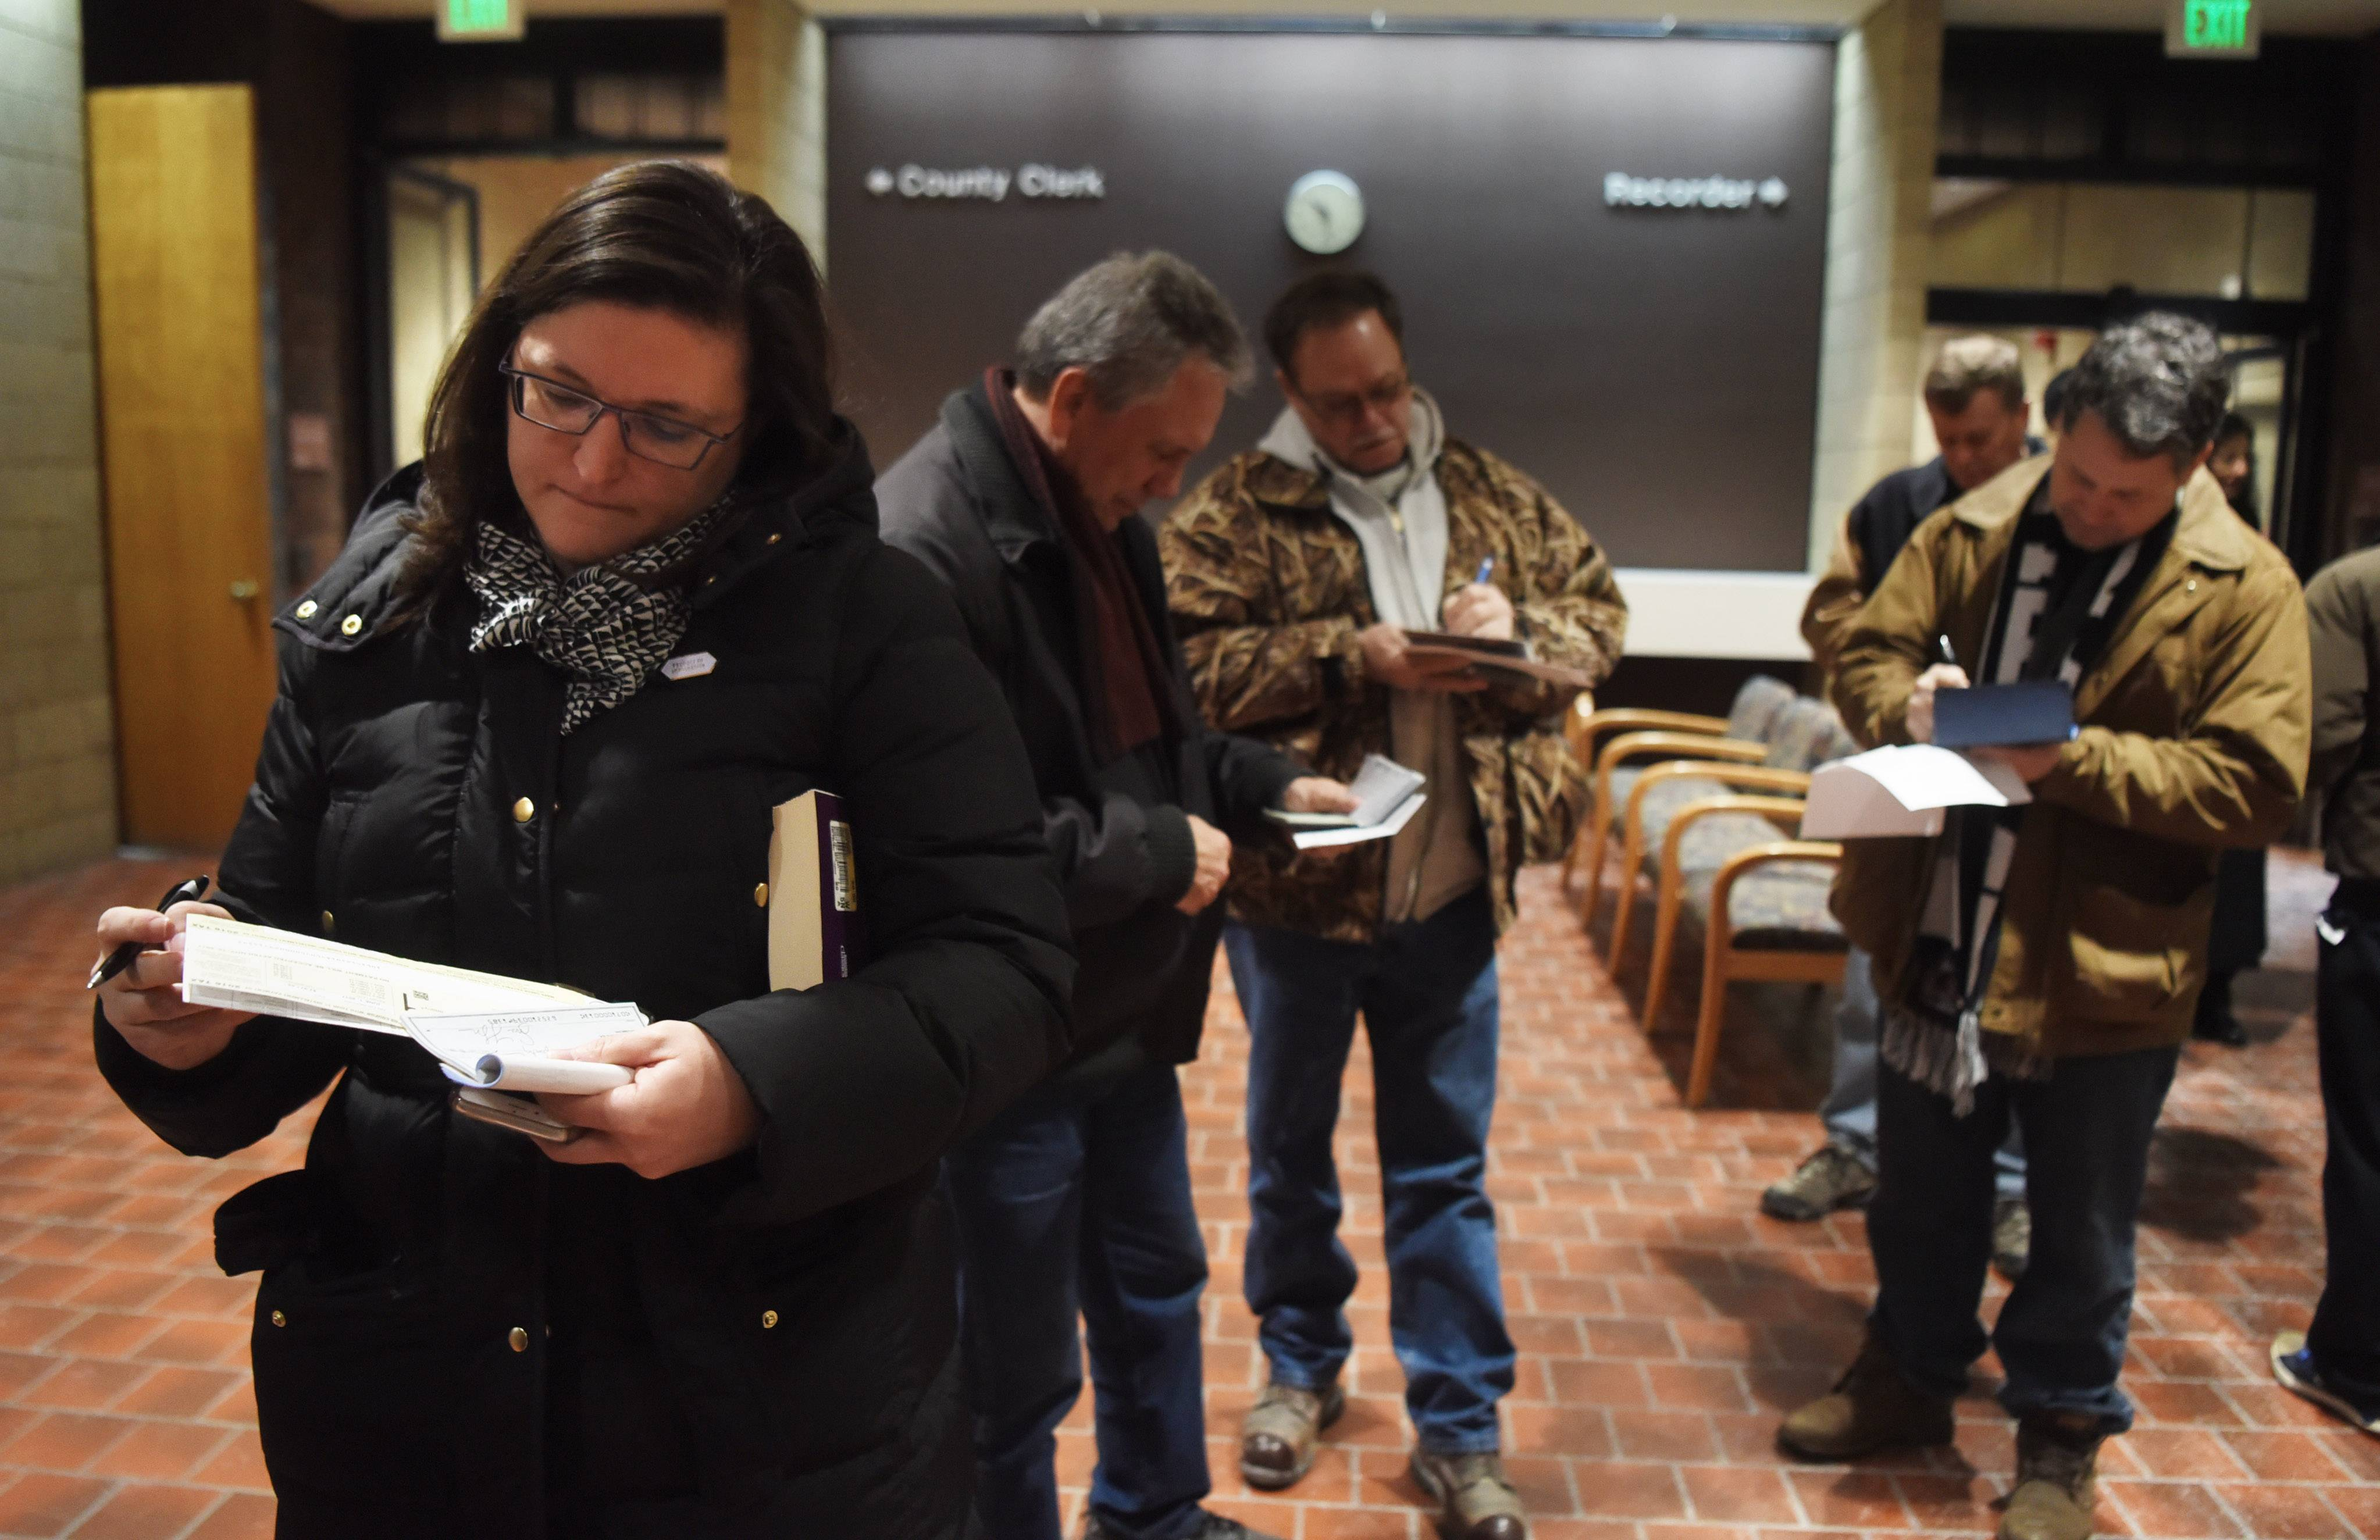 Susan Wilson, of Elmhurst writes a check while standing in line to pay her property taxes at the DuPage County government building in Wheaton Friday.